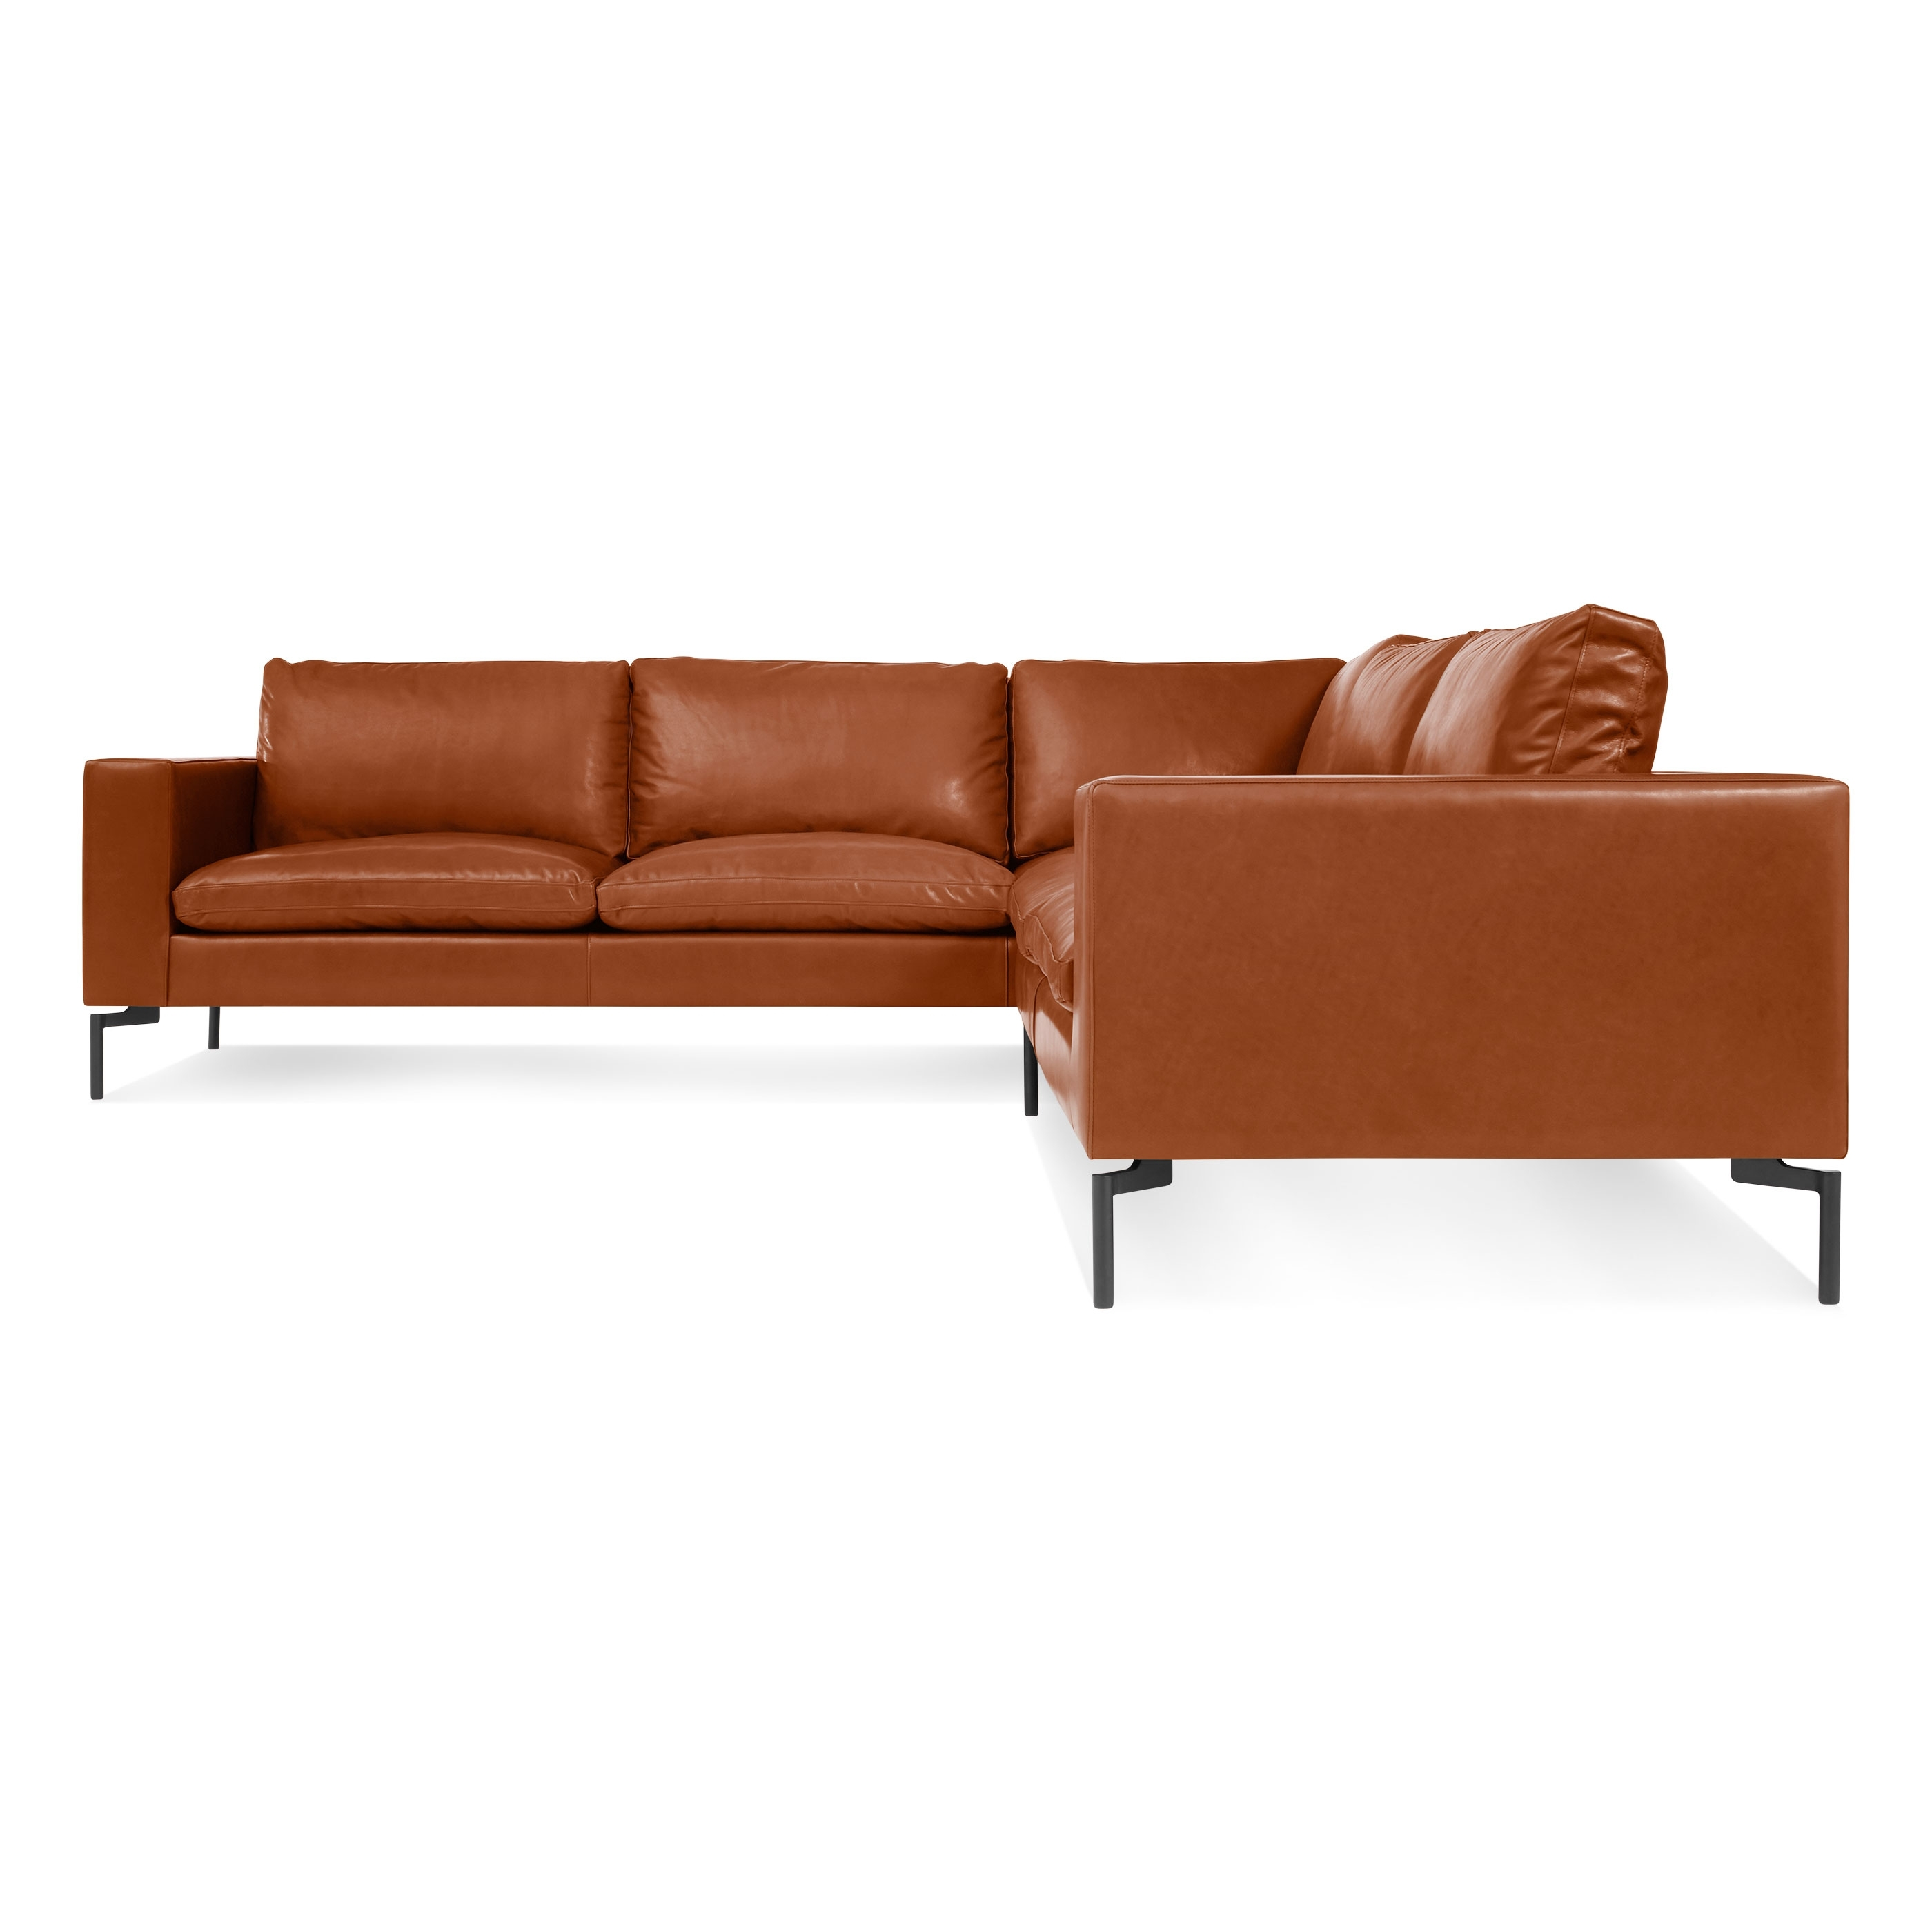 Fashionable Sectional Sofas At Bc Canada Inside New Standard Small Leather Sectional – Modern Leather Sofa (View 7 of 20)